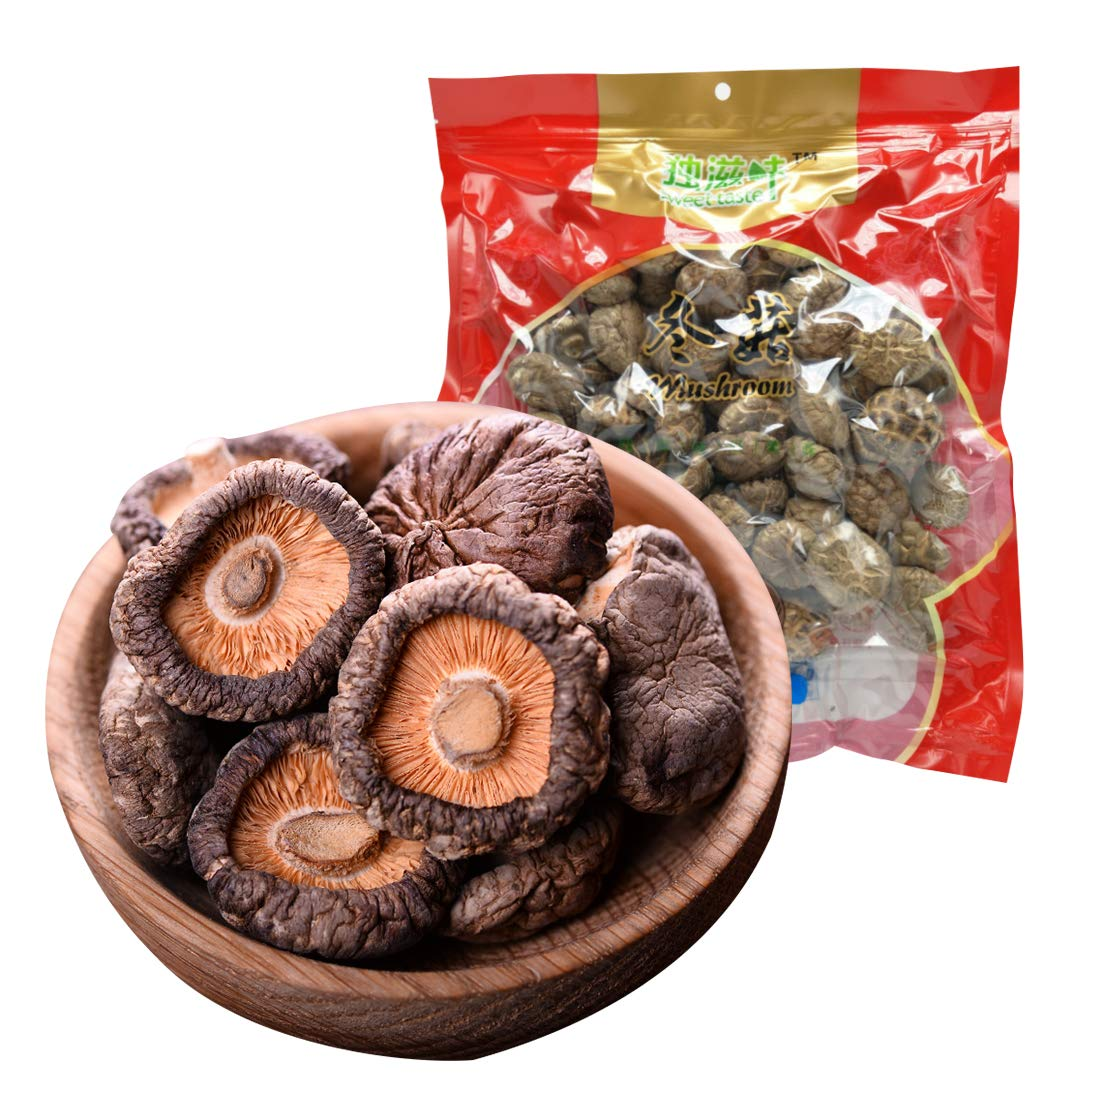 Dried Mushrooms Dried Shiitake 3—4CM Mushrooms Natural Food Non Gmo Food Mushroom 200g